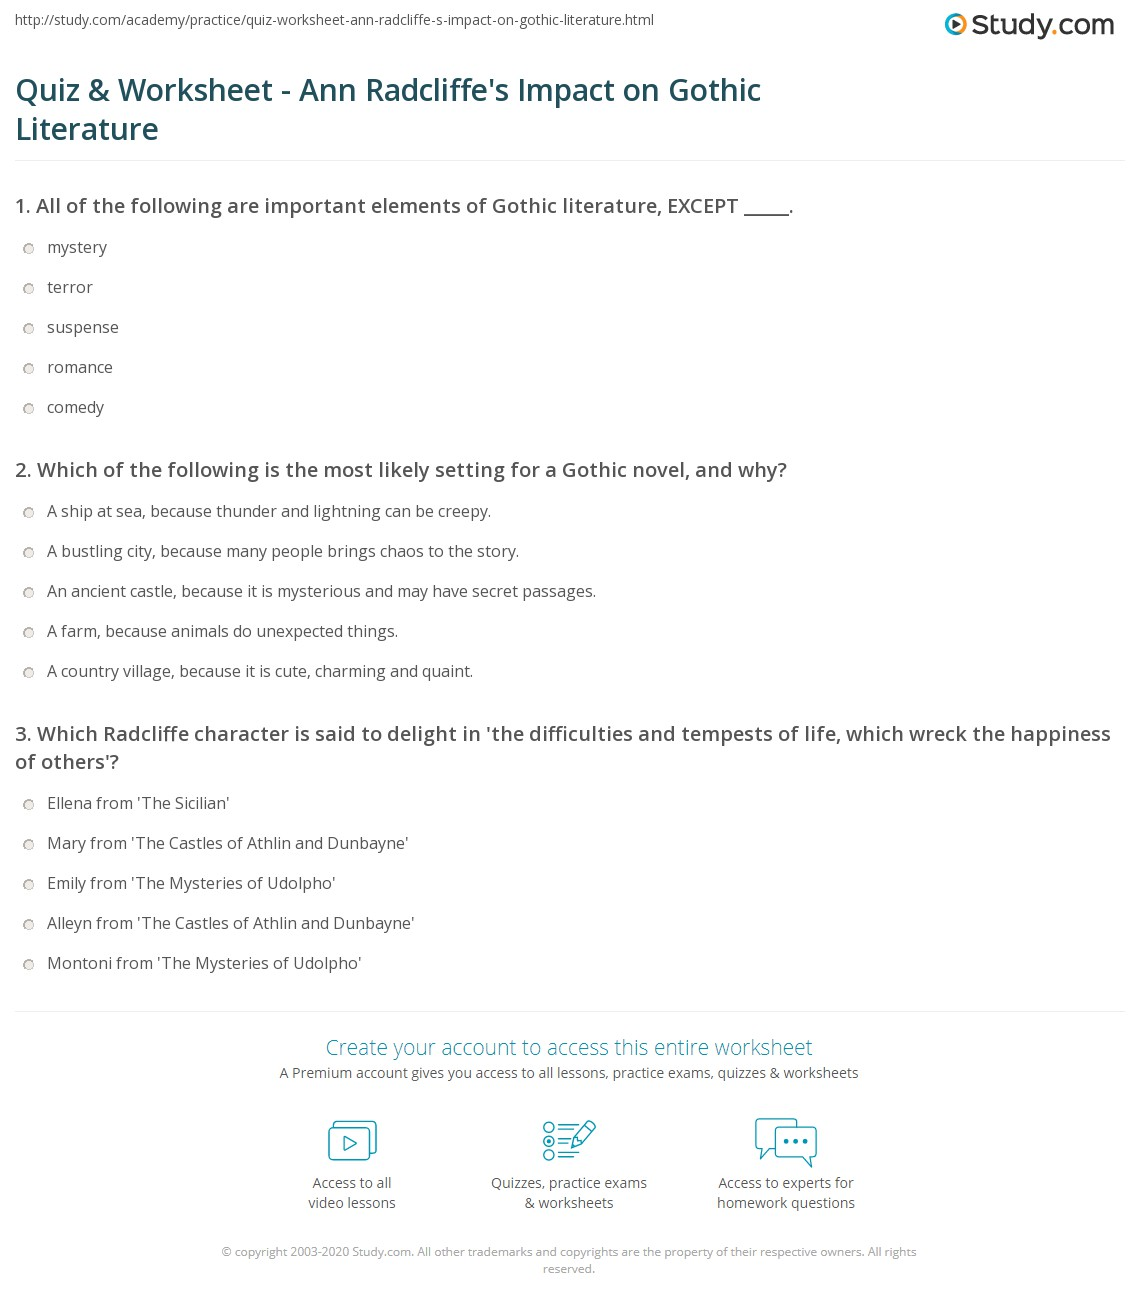 Quiz & Worksheet - Ann Radcliffe's Impact on Gothic Literature  worksheets, education, free worksheets, multiplication, math worksheets, and printable worksheets Elements Of Literature Worksheet 2 1372 x 1140